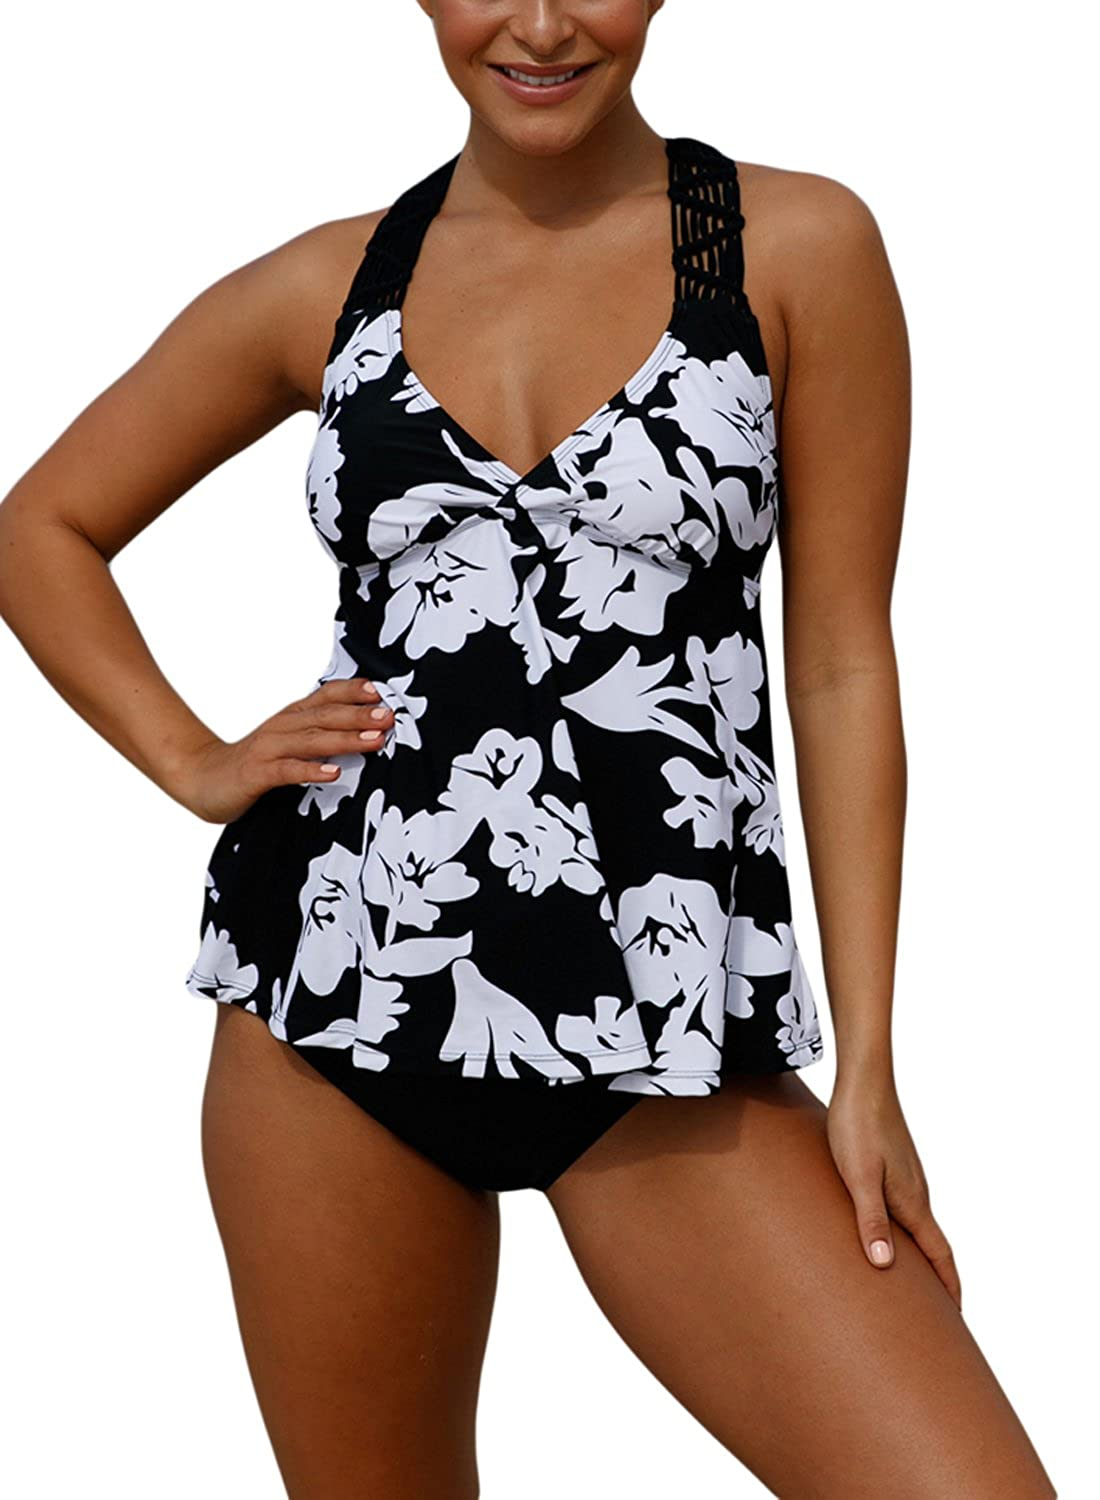 3eaa4c9abf5c6 Figure-Flattering Shirred Bandeau Swimdress with a Bottom Waist Length  Style Tankini, Tummy Control Lining, trendy Slim Silhouette